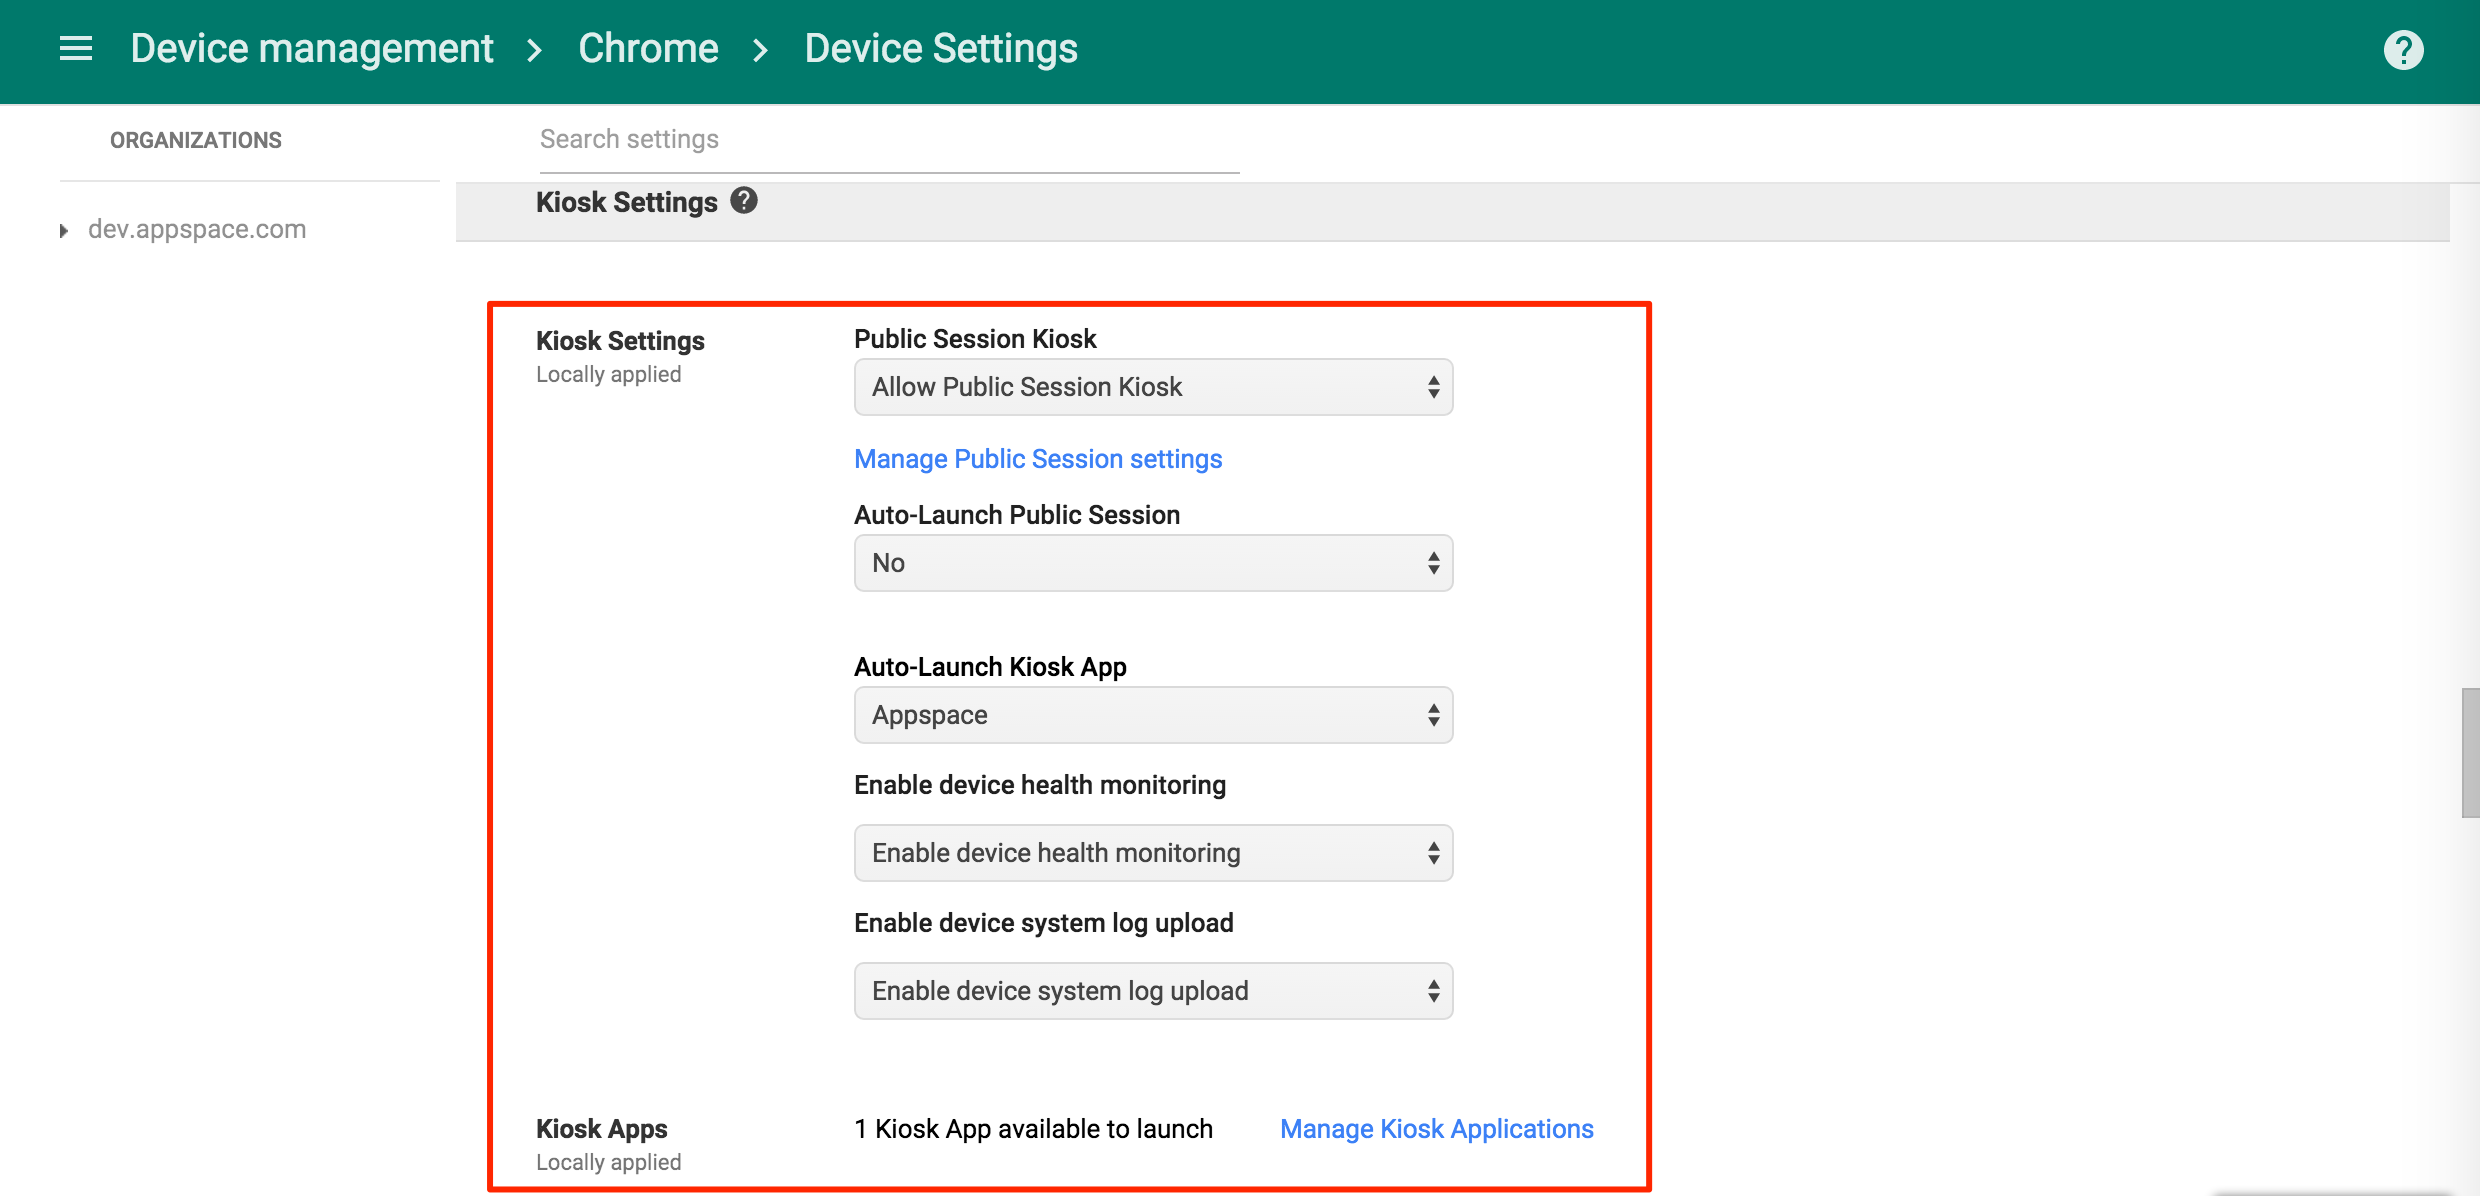 Configuring Chromebox with Google Chrome Device Management